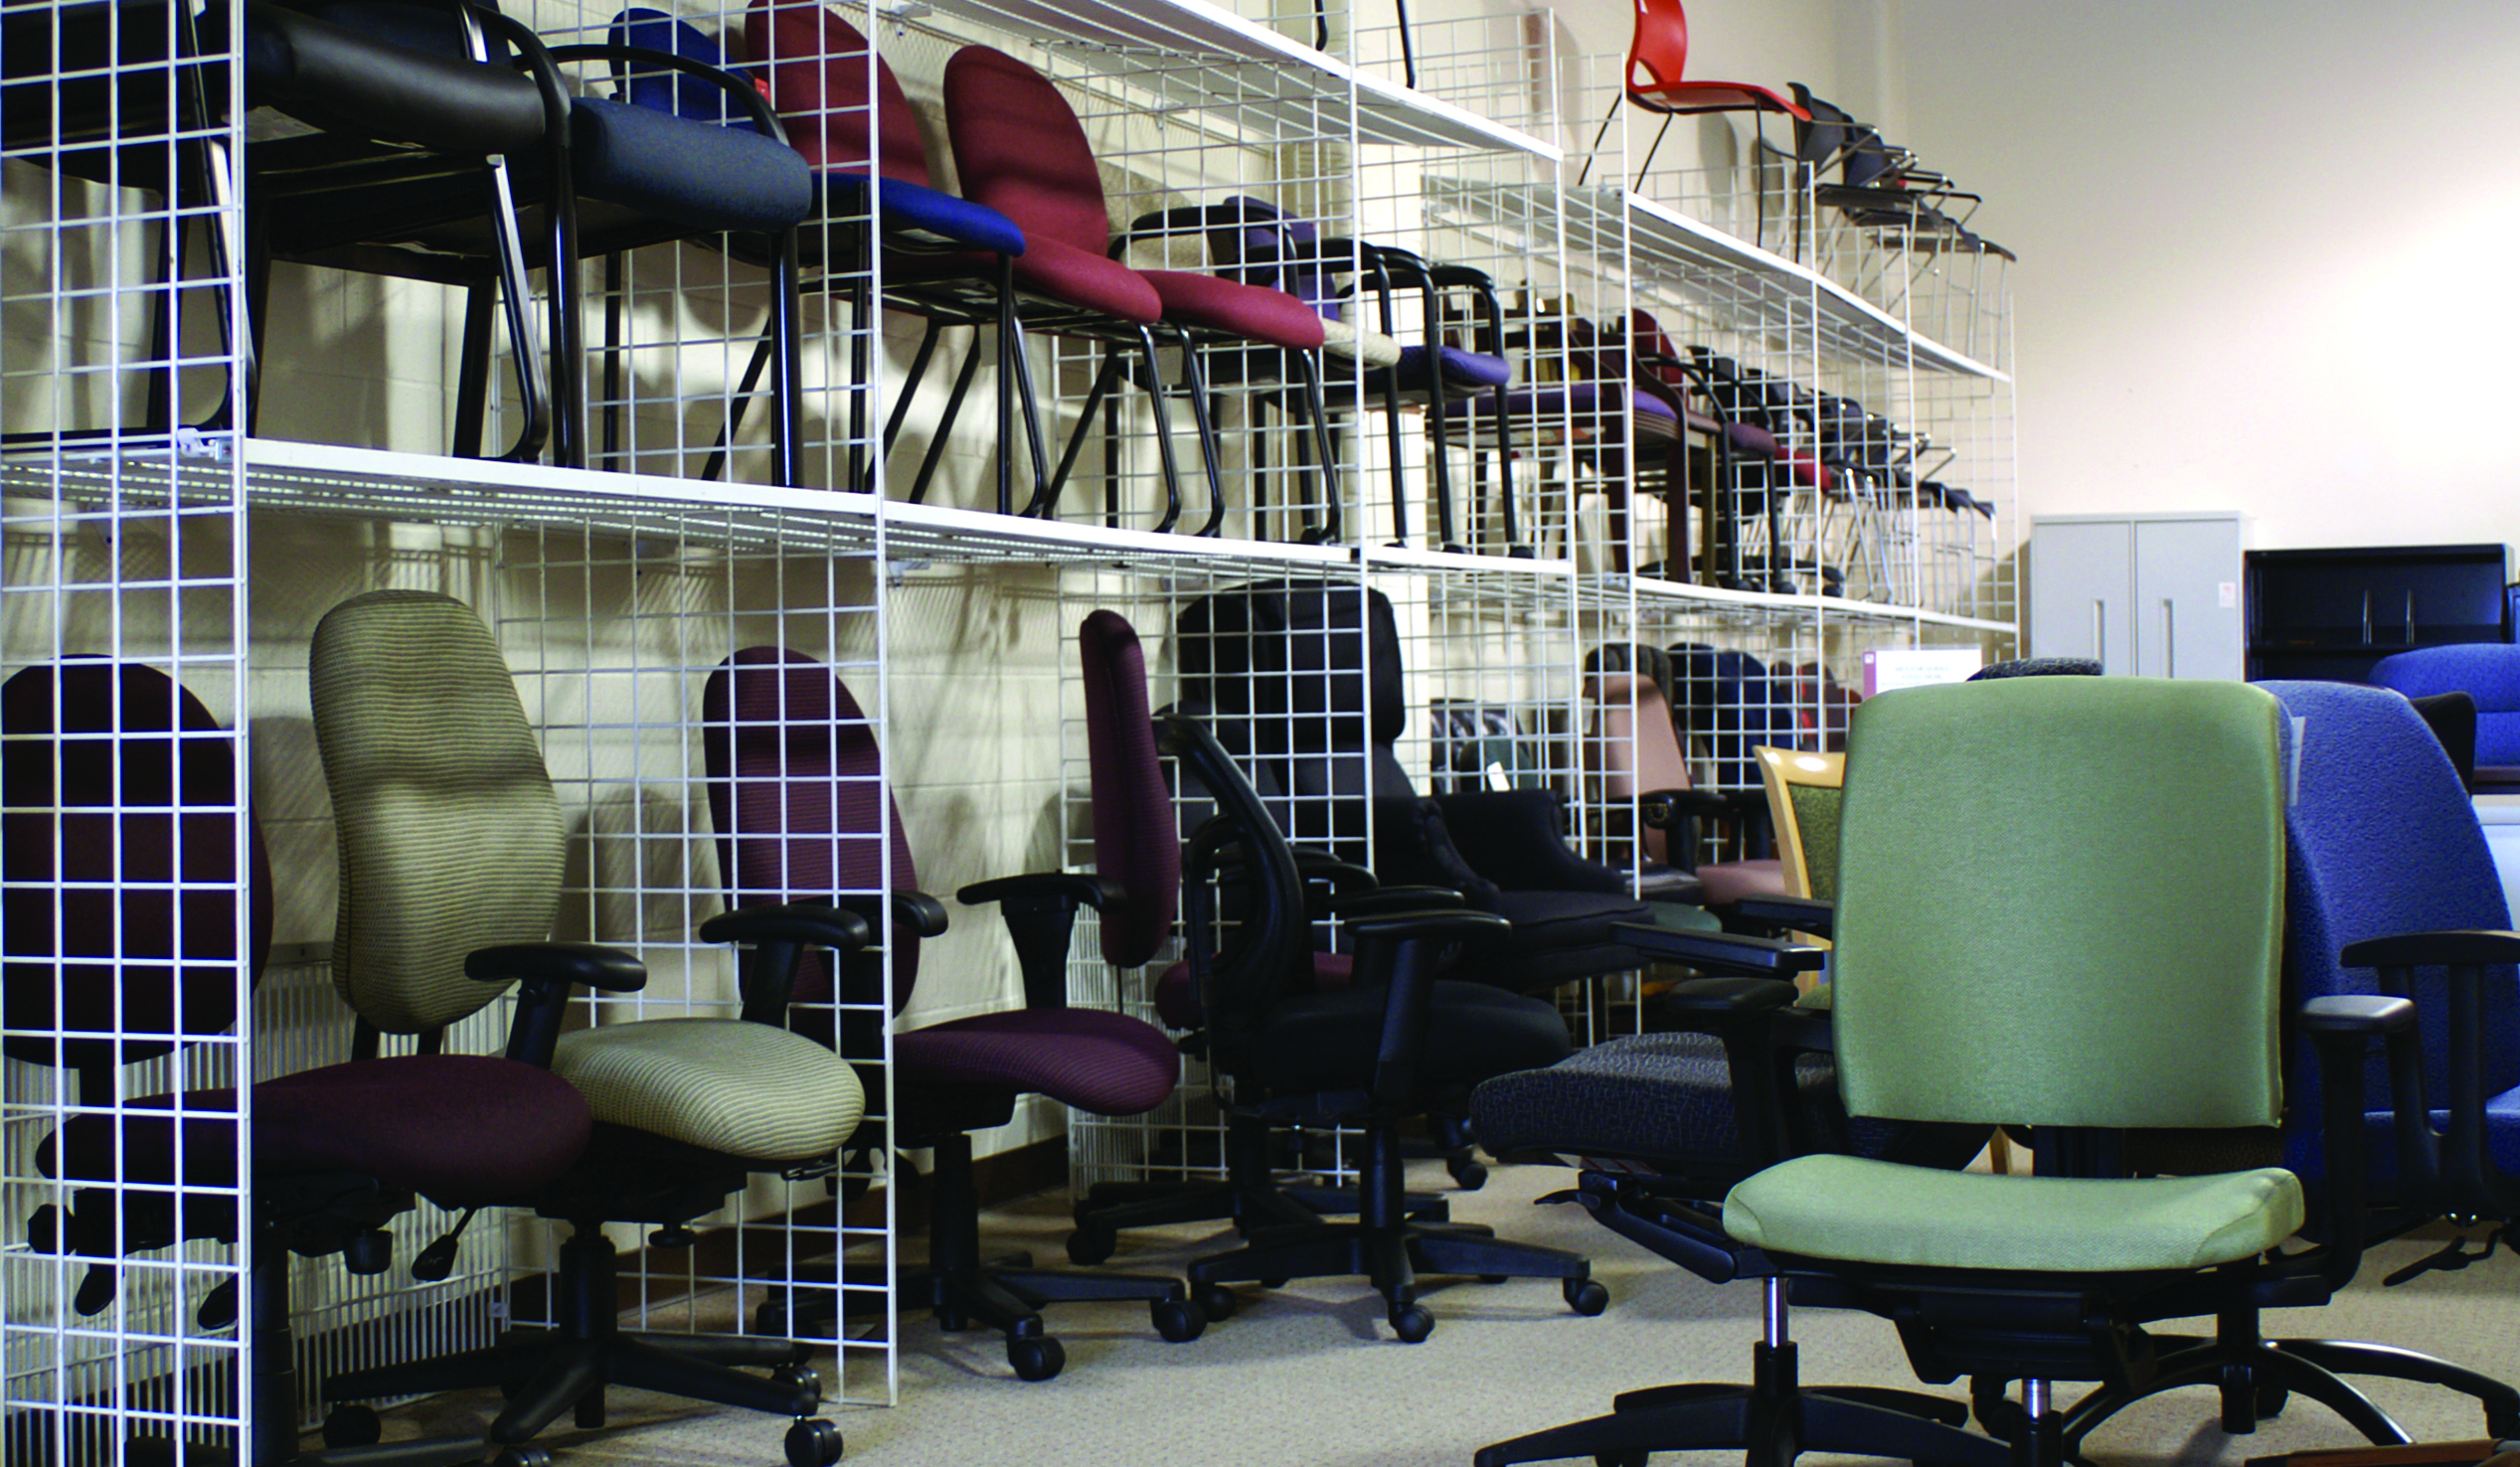 Office Chair Archives Workspace Solutionsworkspace Solutions